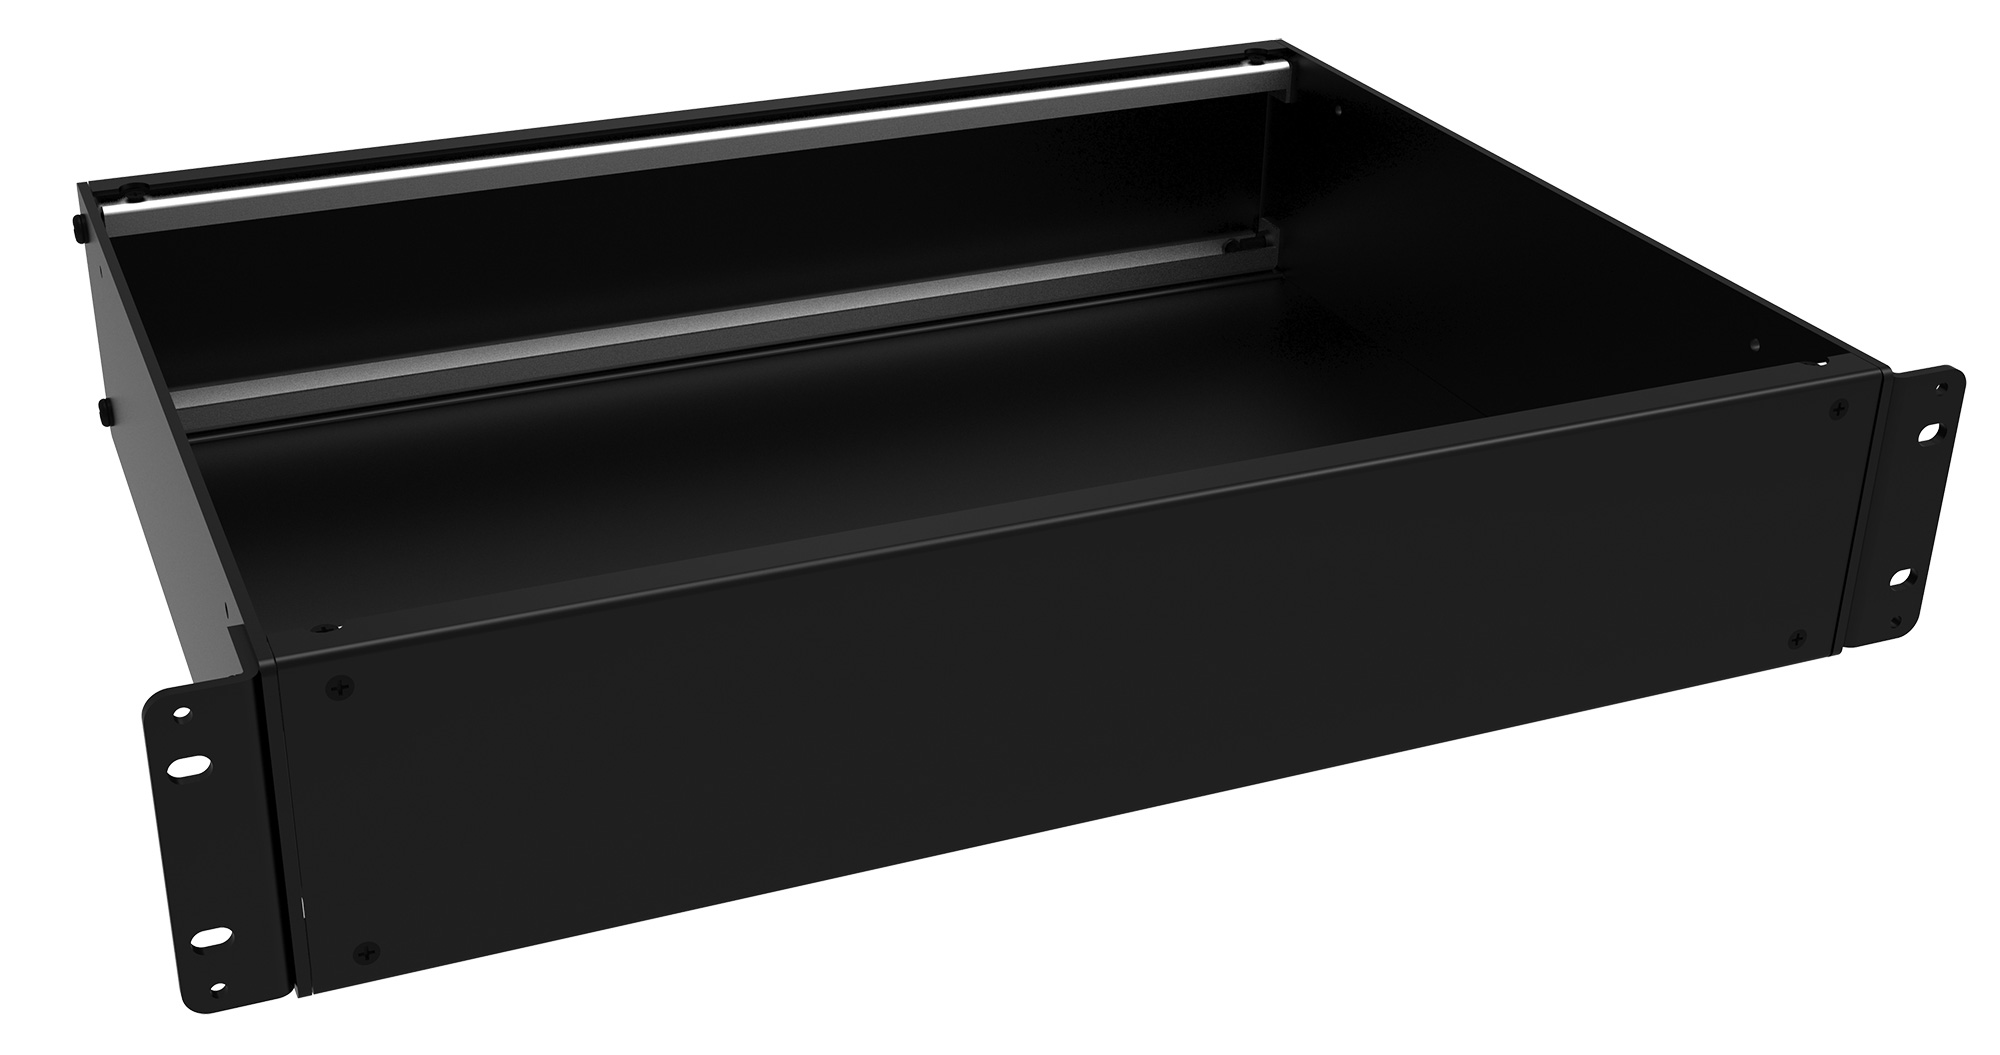 RMCS190313BK1 - RMC Series Rack-Mounting Instrument Enclosure with Solid Top/Bottom